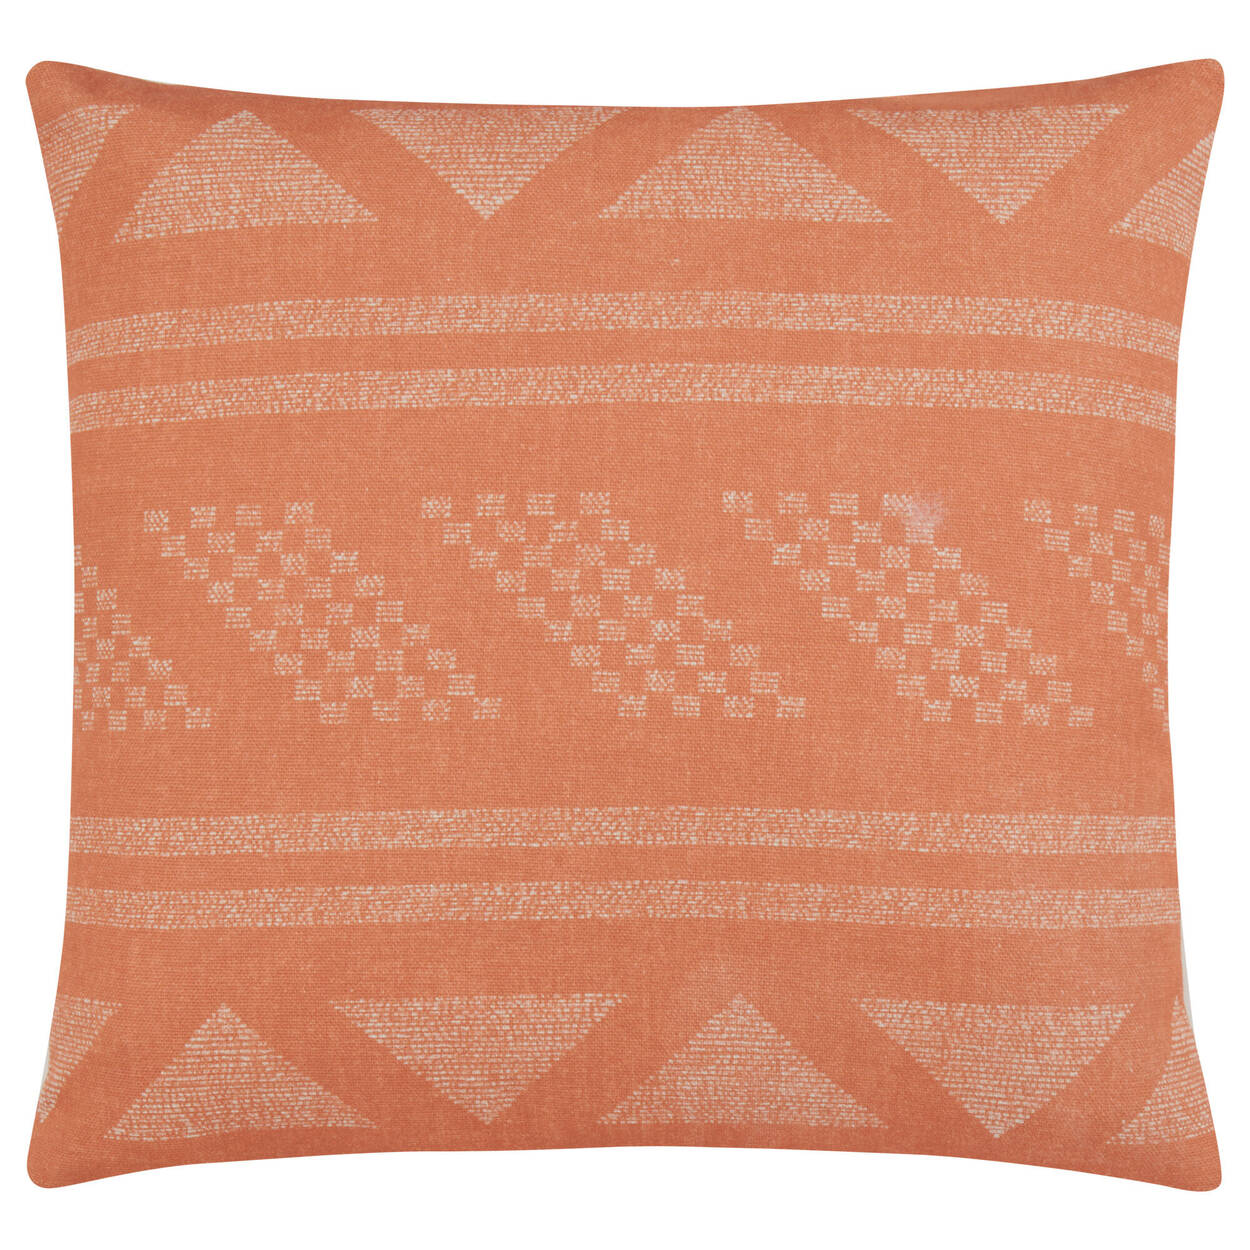 "Vilma Pillow Cover 18"" x 18"""